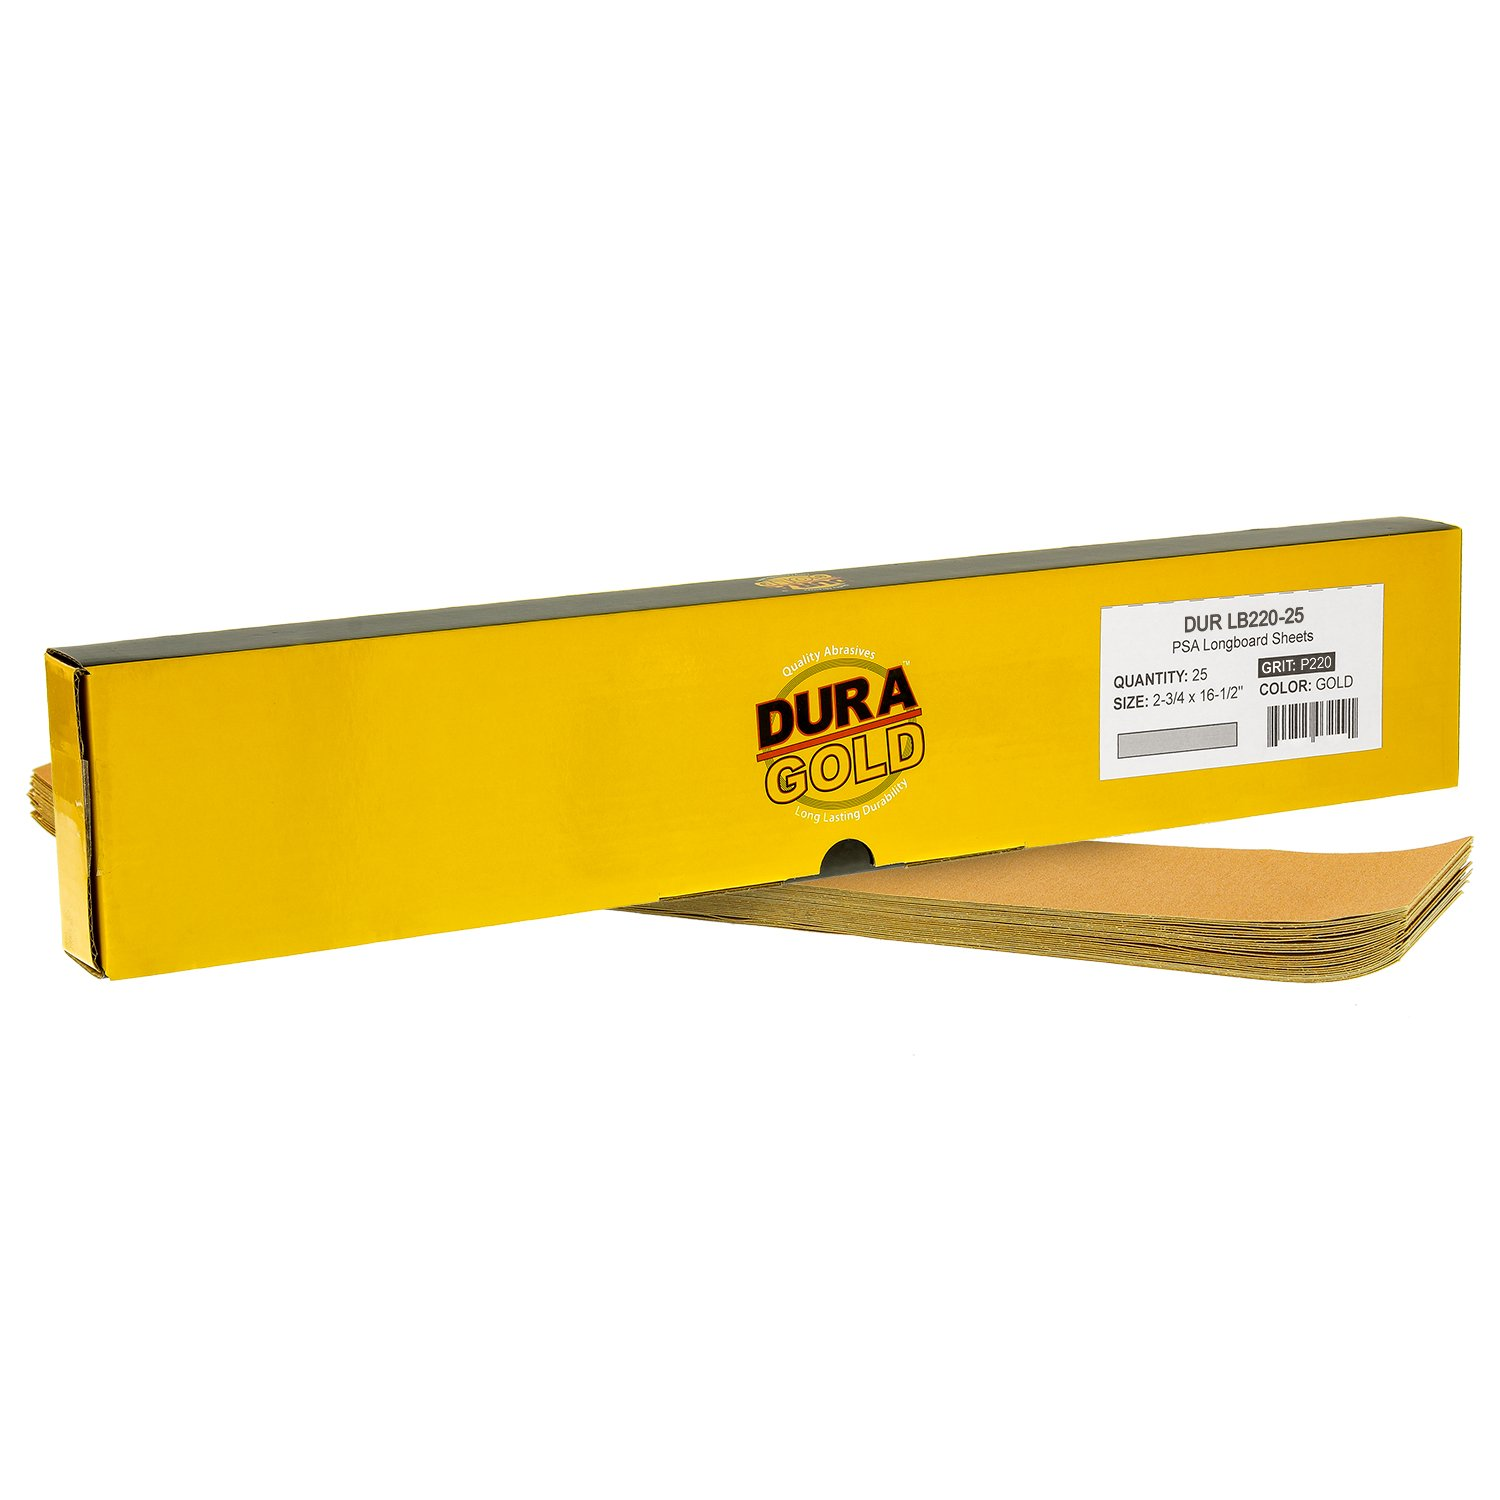 Dura-Gold - Premium - 220 Grit Gold - Pre-Cut Longboard Sheets 2-3/4'' wide by 16-1/2'' long - PSA Self Adhesive Stickyback Longboard Sandpaper - Box of 25 Sandpaper Finishing Sheets